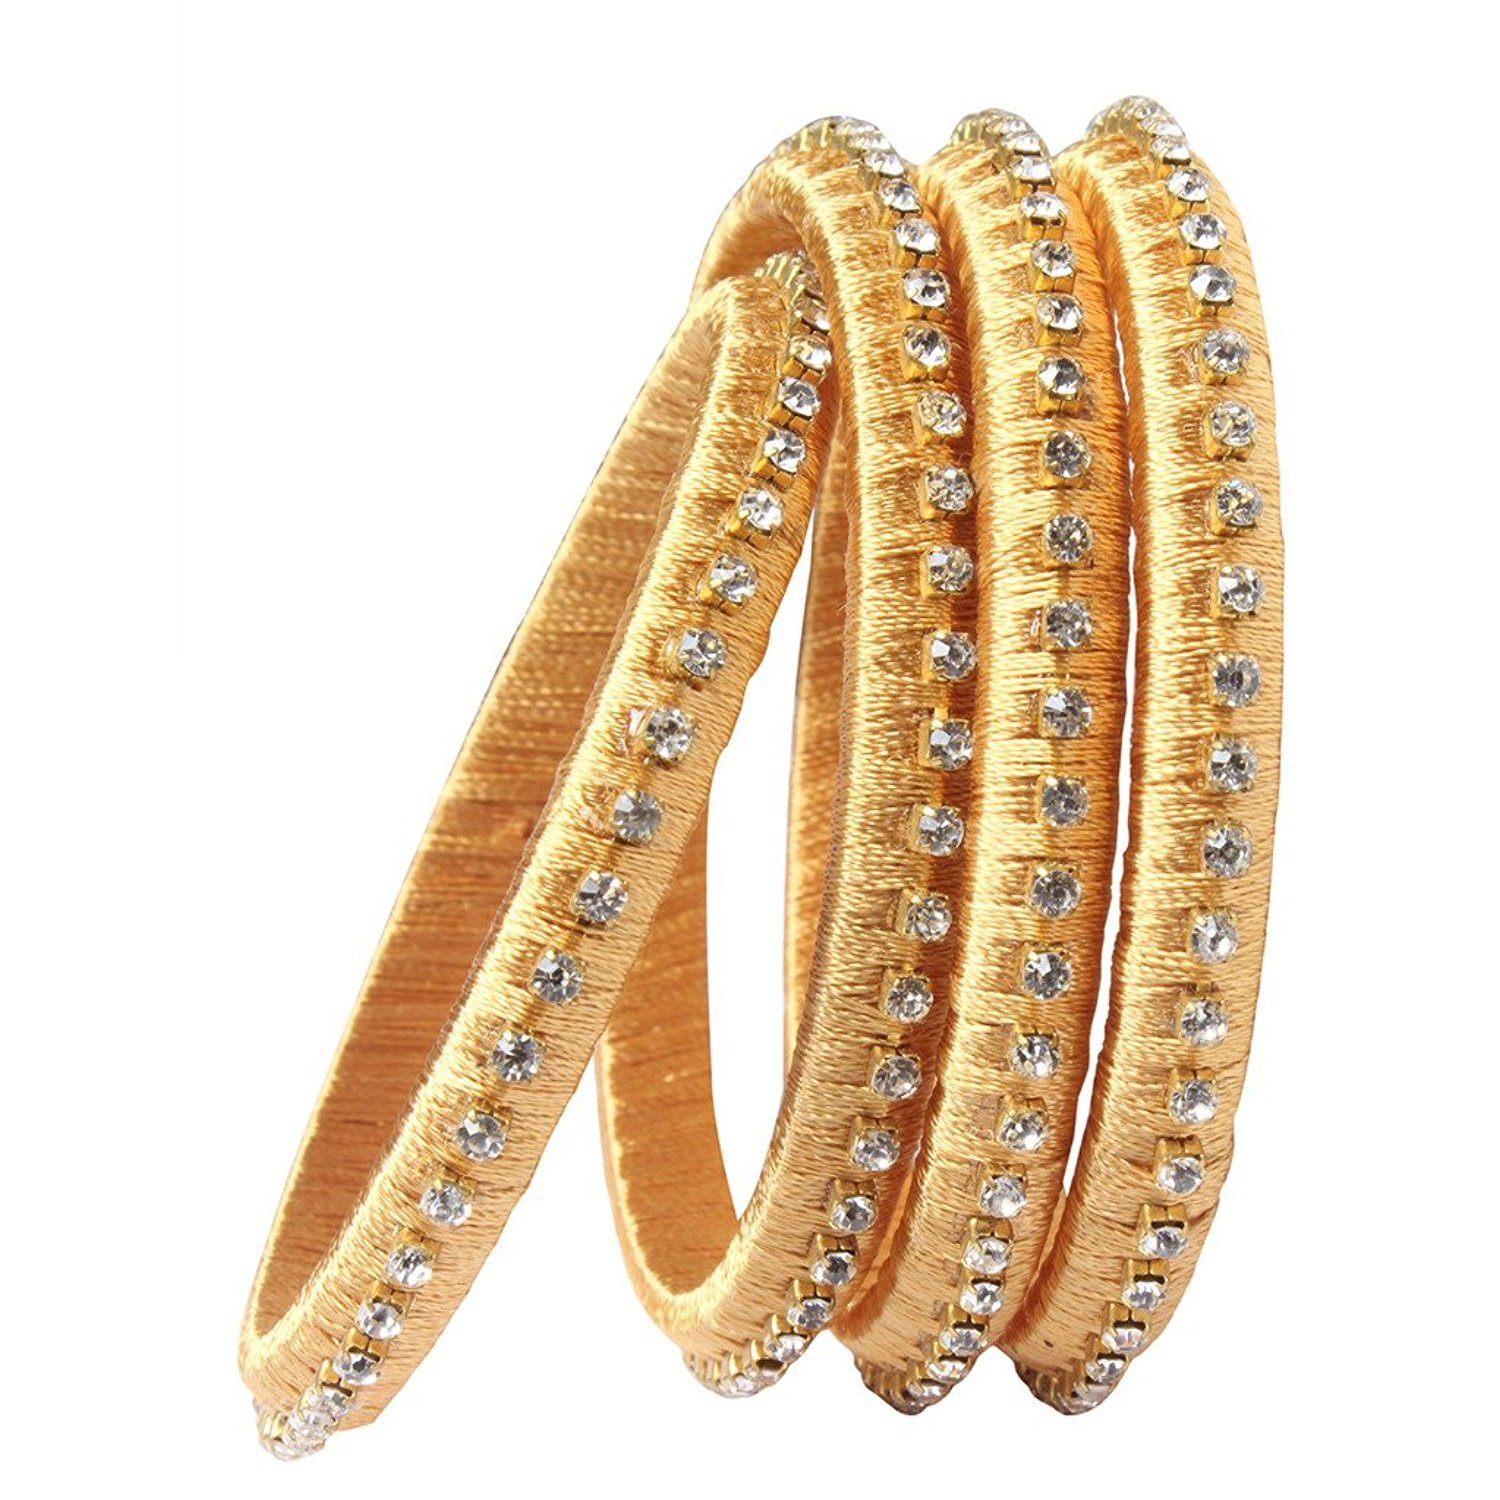 and by garden designed bangle designs floral broad gold design pin bangles inspired